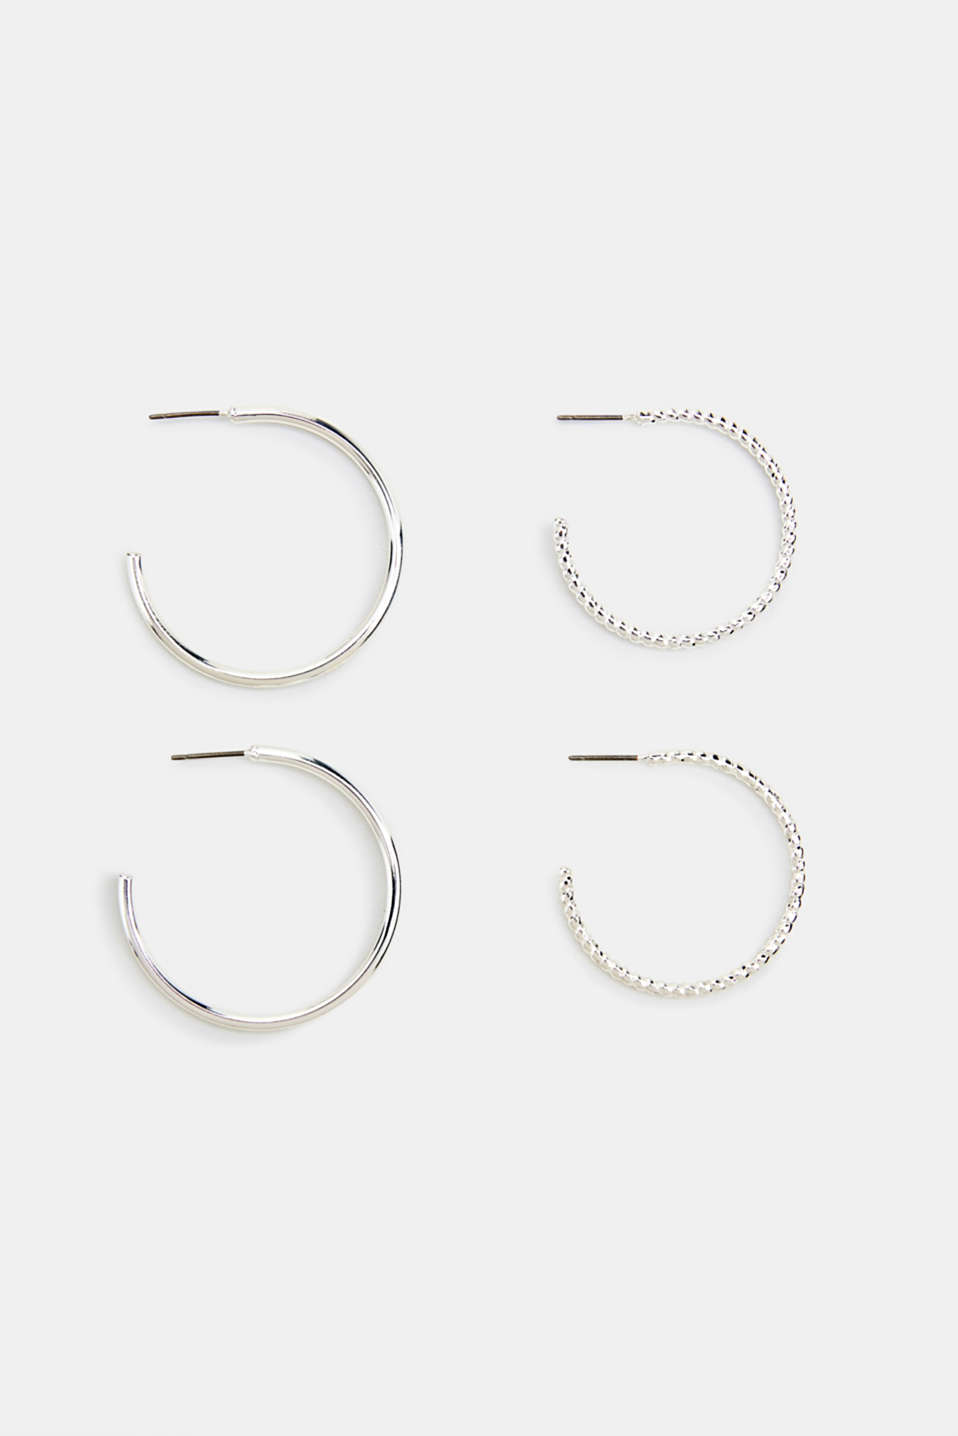 Set consisting of two pairs of hoop earrings, LC1COLOR, detail image number 0